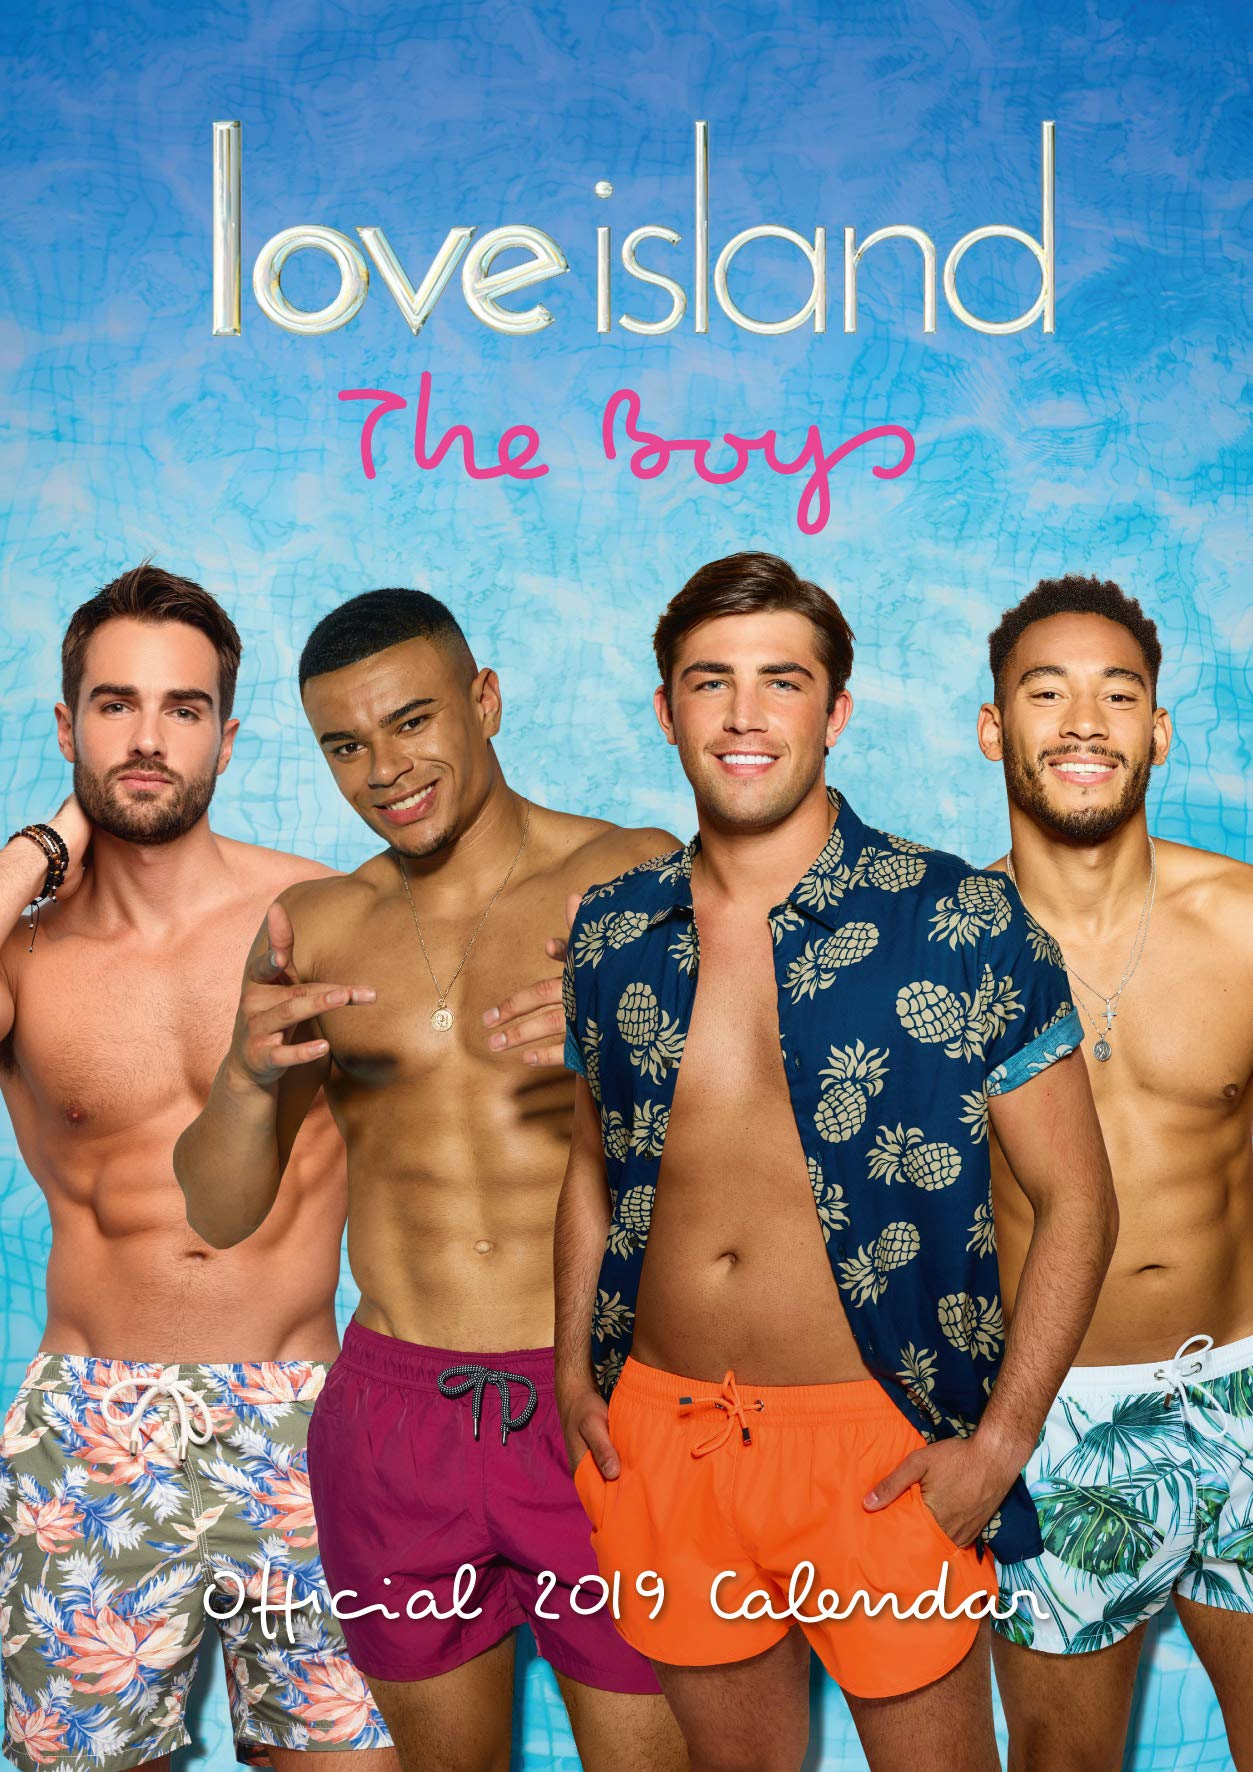 Love Island Boys Official 2019 Calendar A3 Wall Calendar 9781785498145 Amazon Com Books To the highest highs, here are your season 4 islanders in all their glory. carousel calendars